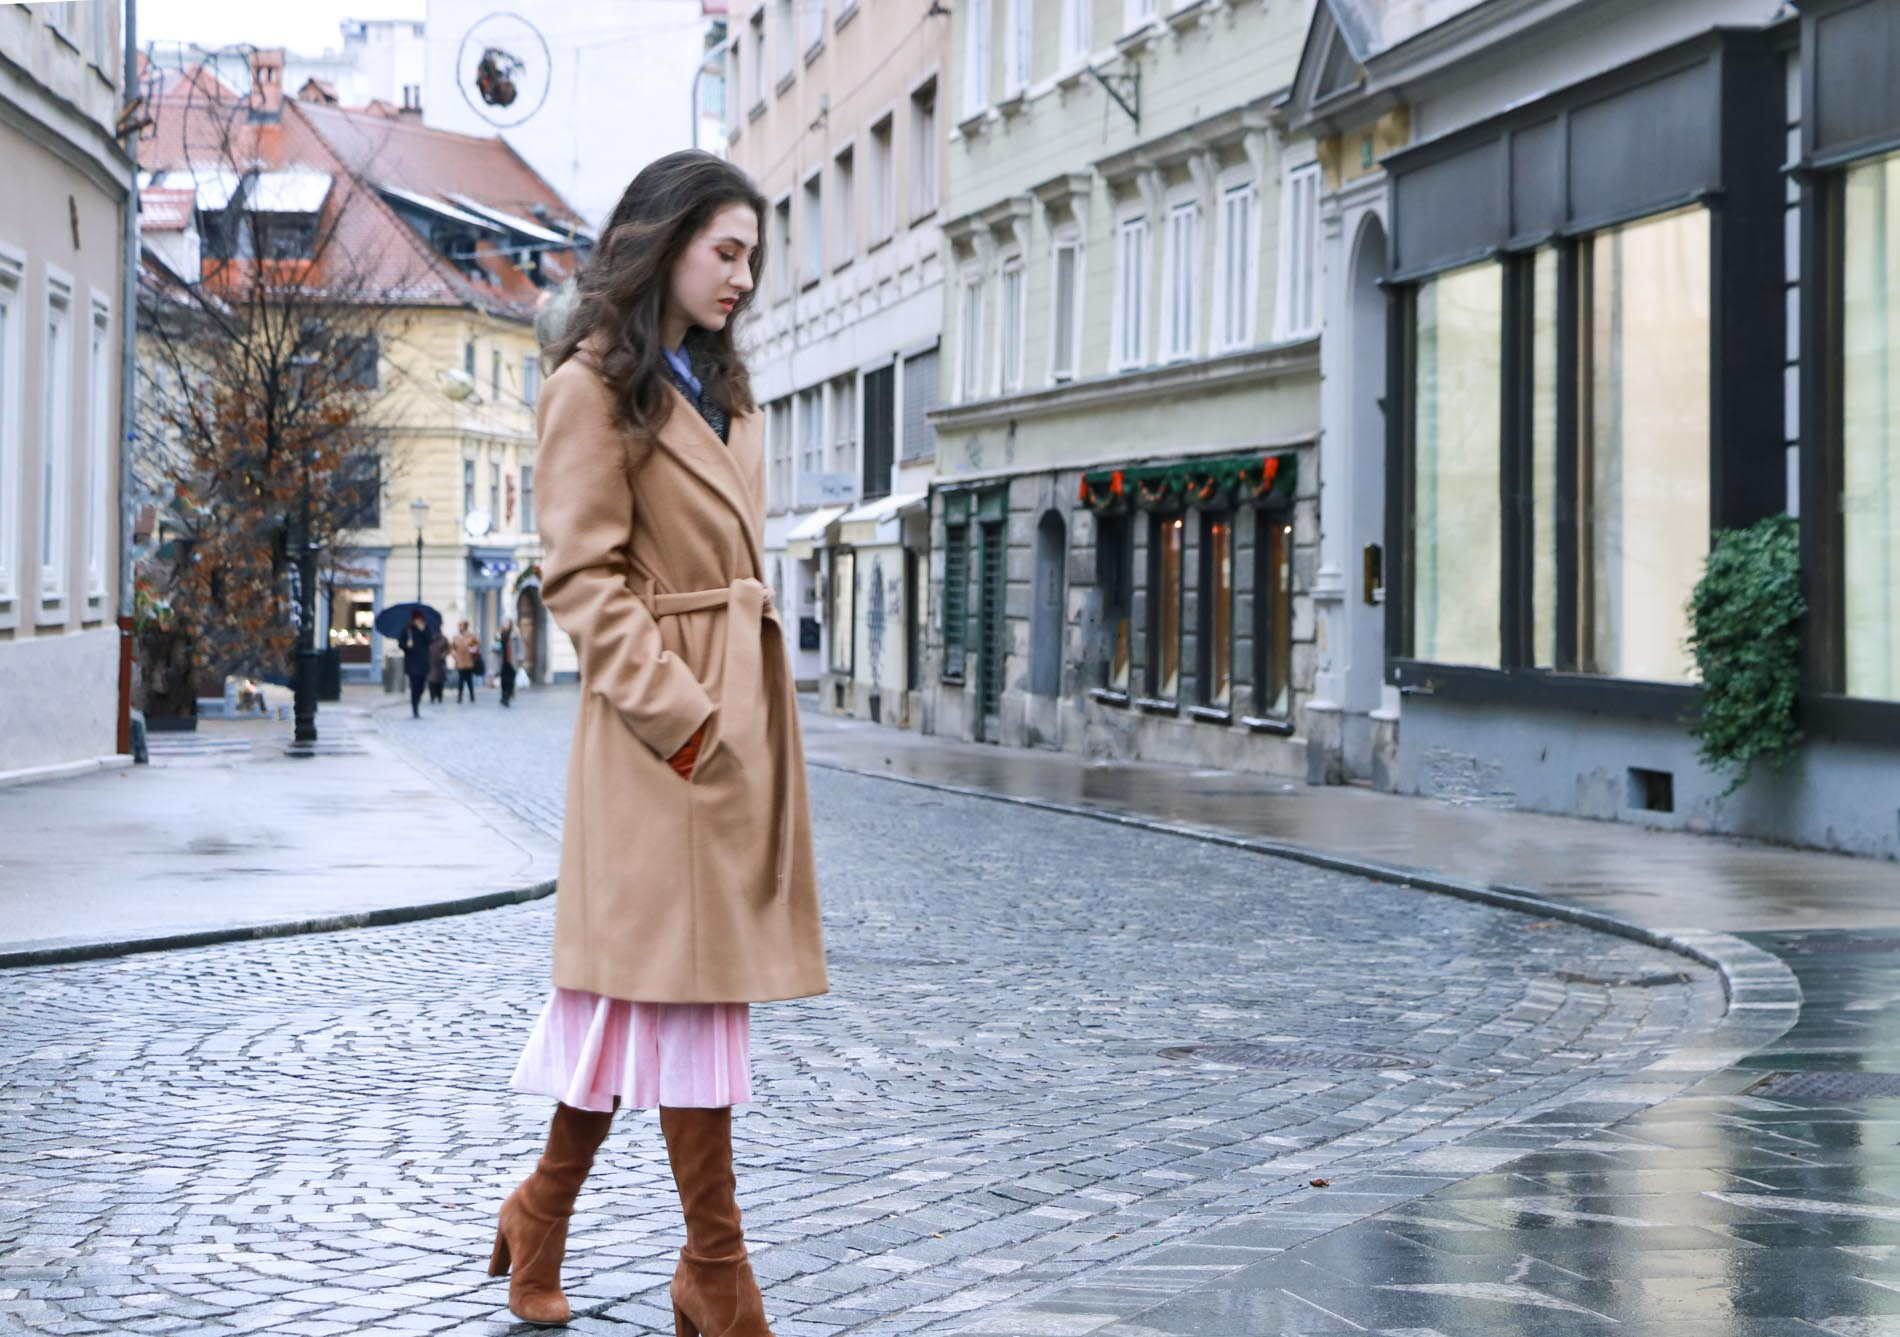 Fashion Blogger Veronika Lipar of Brunette from Wall Street on what to wear this Christmas